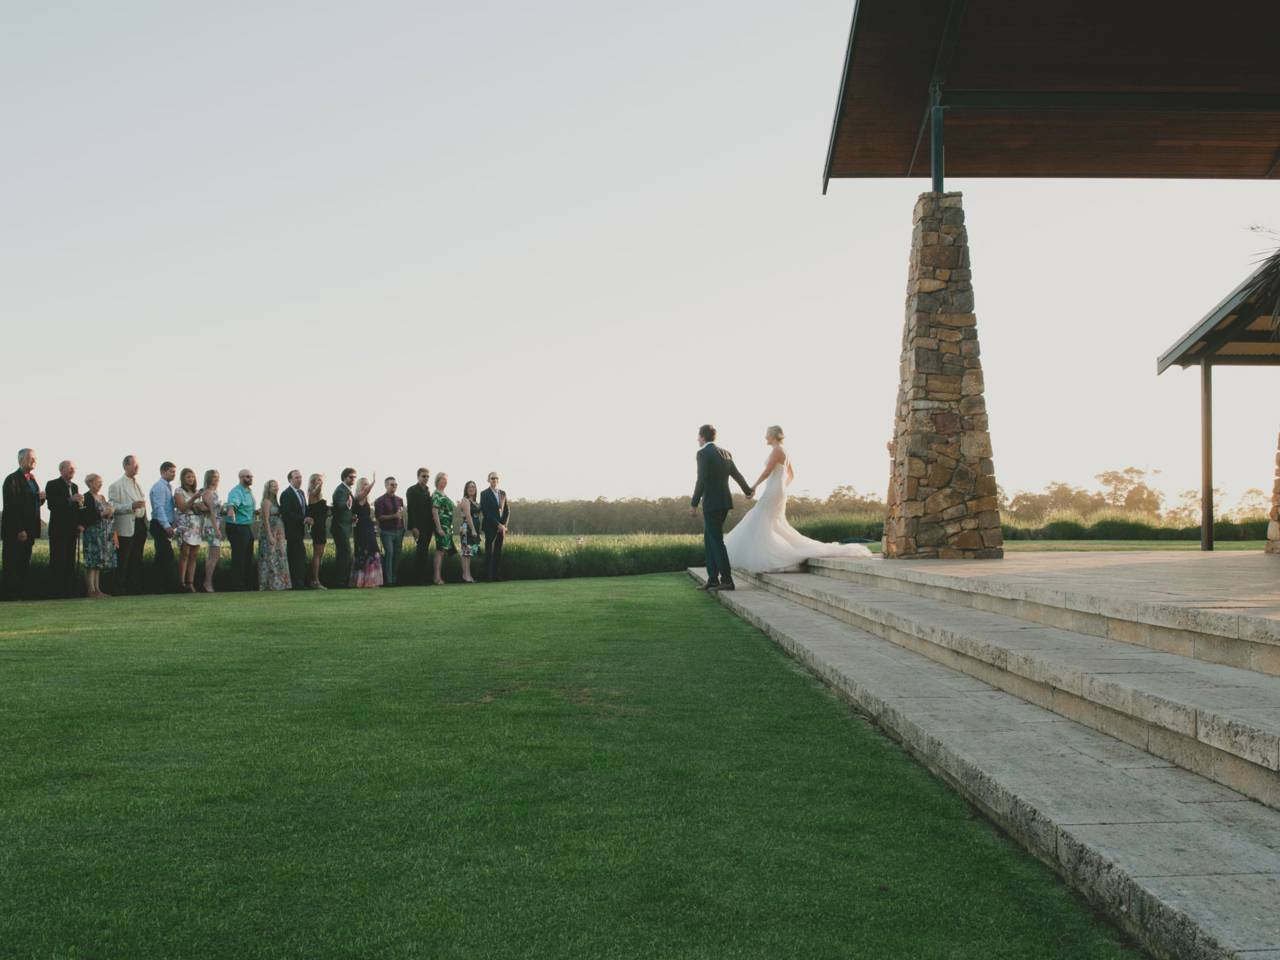 Bride and bridegroom walking across grass at venue